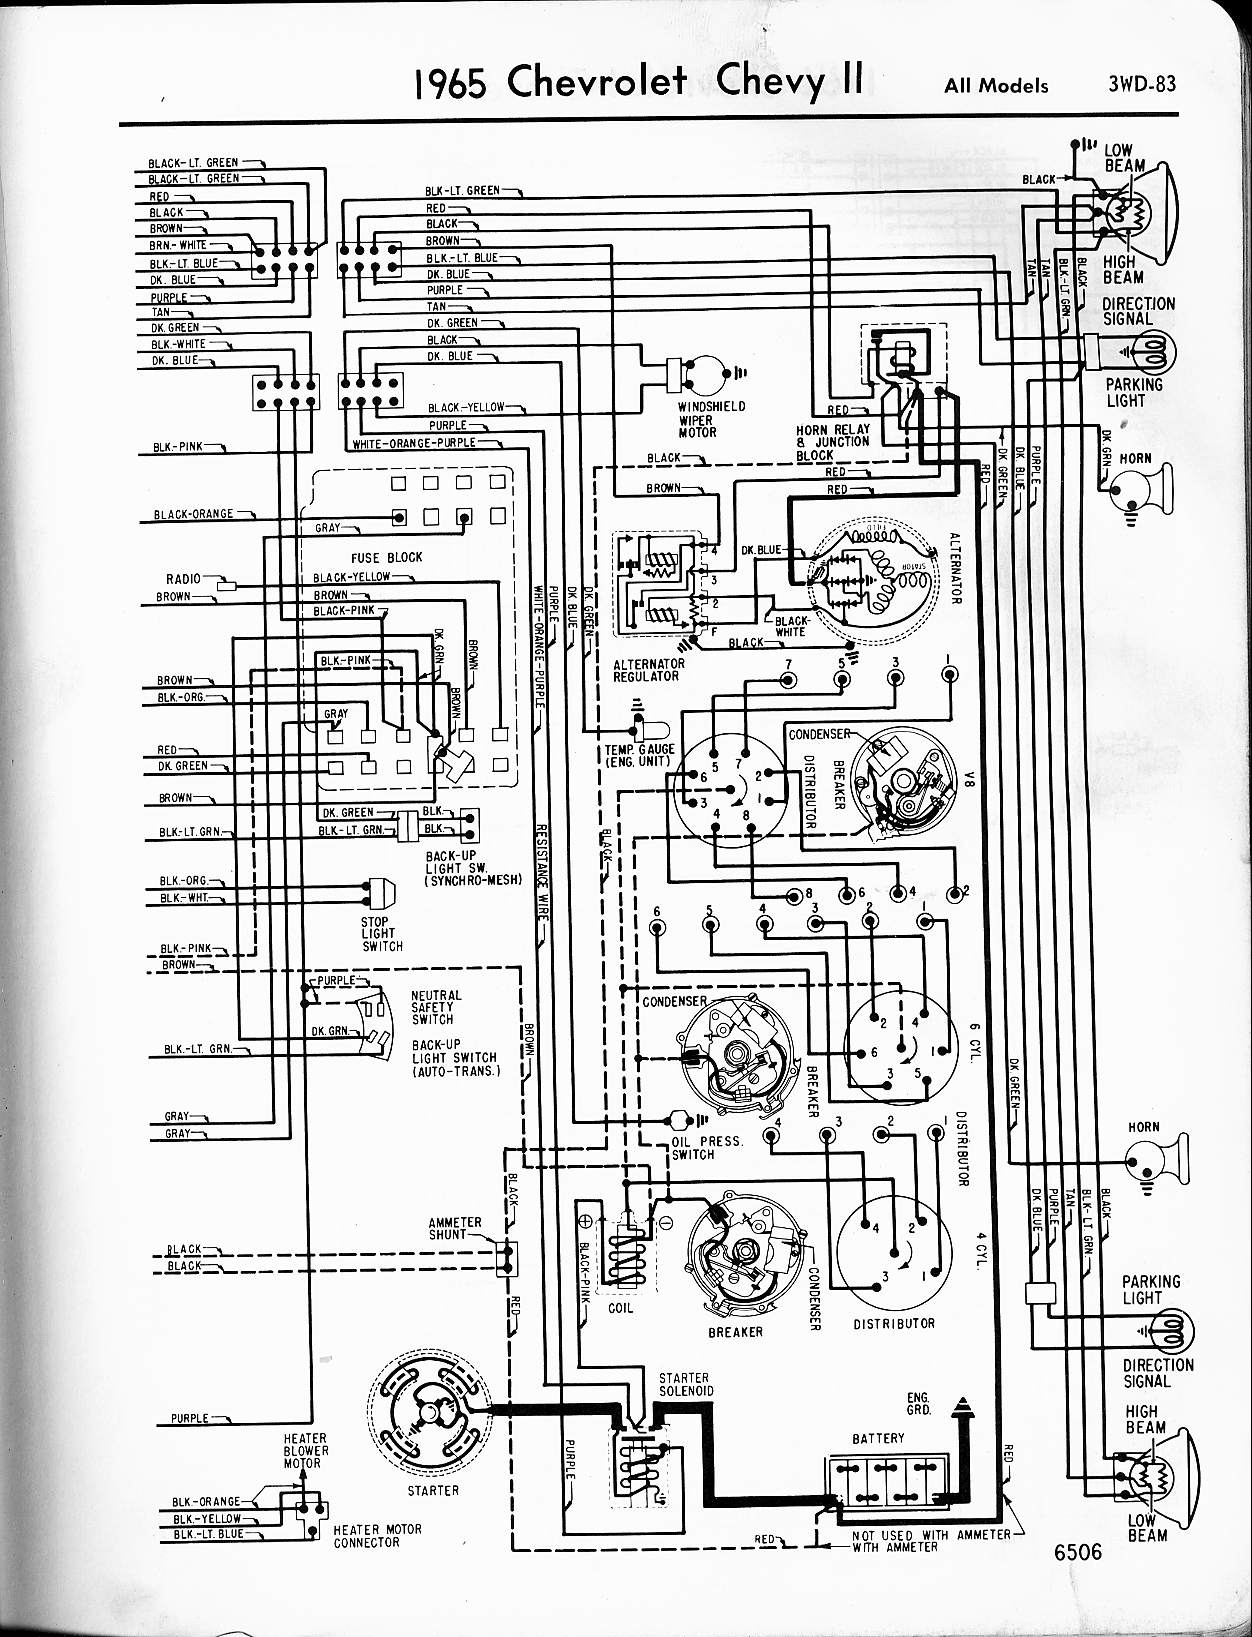 1966 Gmc Dash Wiring Diagrams Opinions About Diagram Chevrolet Silverado Chevy Schematic Detailed Schematics Rh Keyplusrubber Com 66 Truck Harness